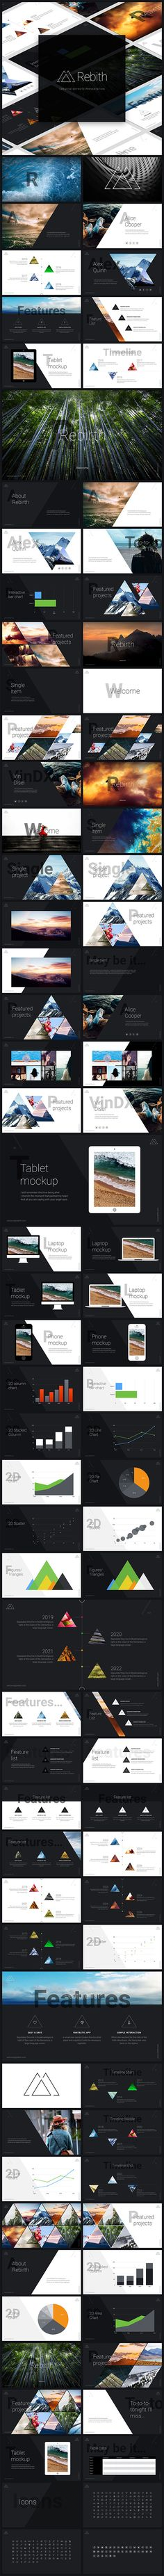 Rebirth Keynote Presentation Template. Download here: http://graphicriver.net/item/rebirth-keynote-presentation/15138098?ref=ksioks